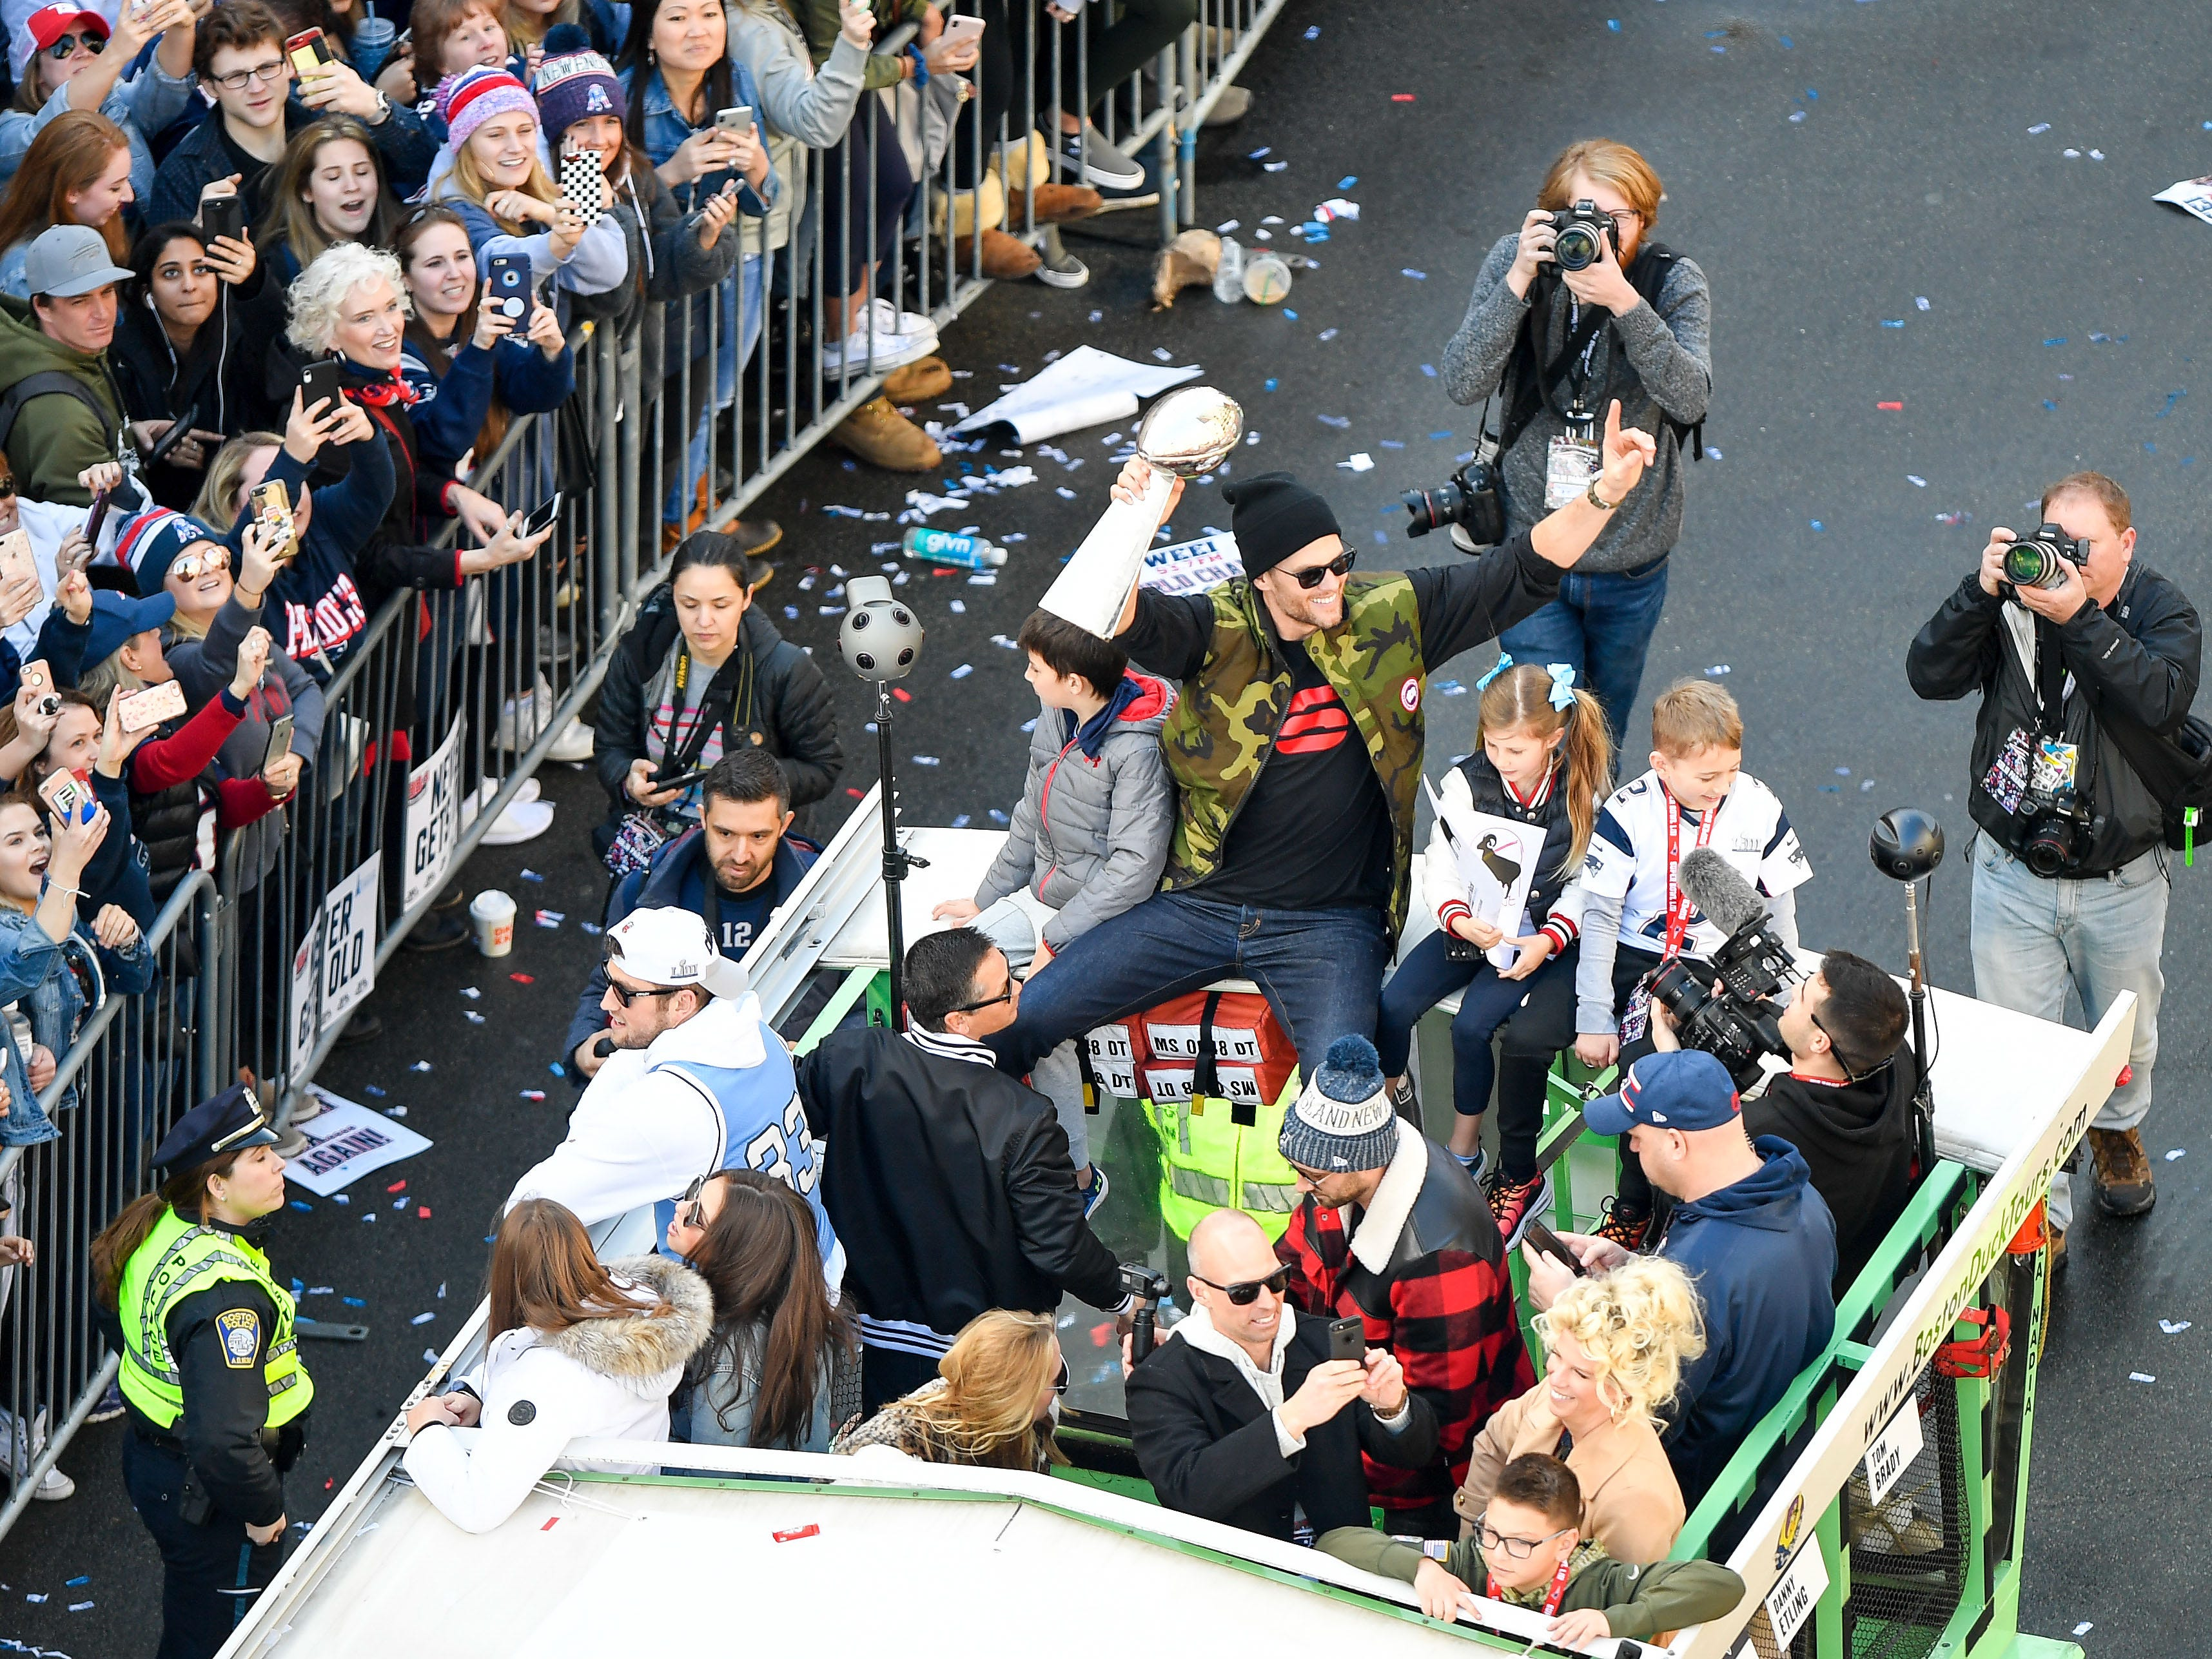 New England Patriots quarterback Tom Brady holds up the Lombardi Trophy as he rides a duck boat on Boylston Street during the Super Bowl LIII championship parade near Copley Square.